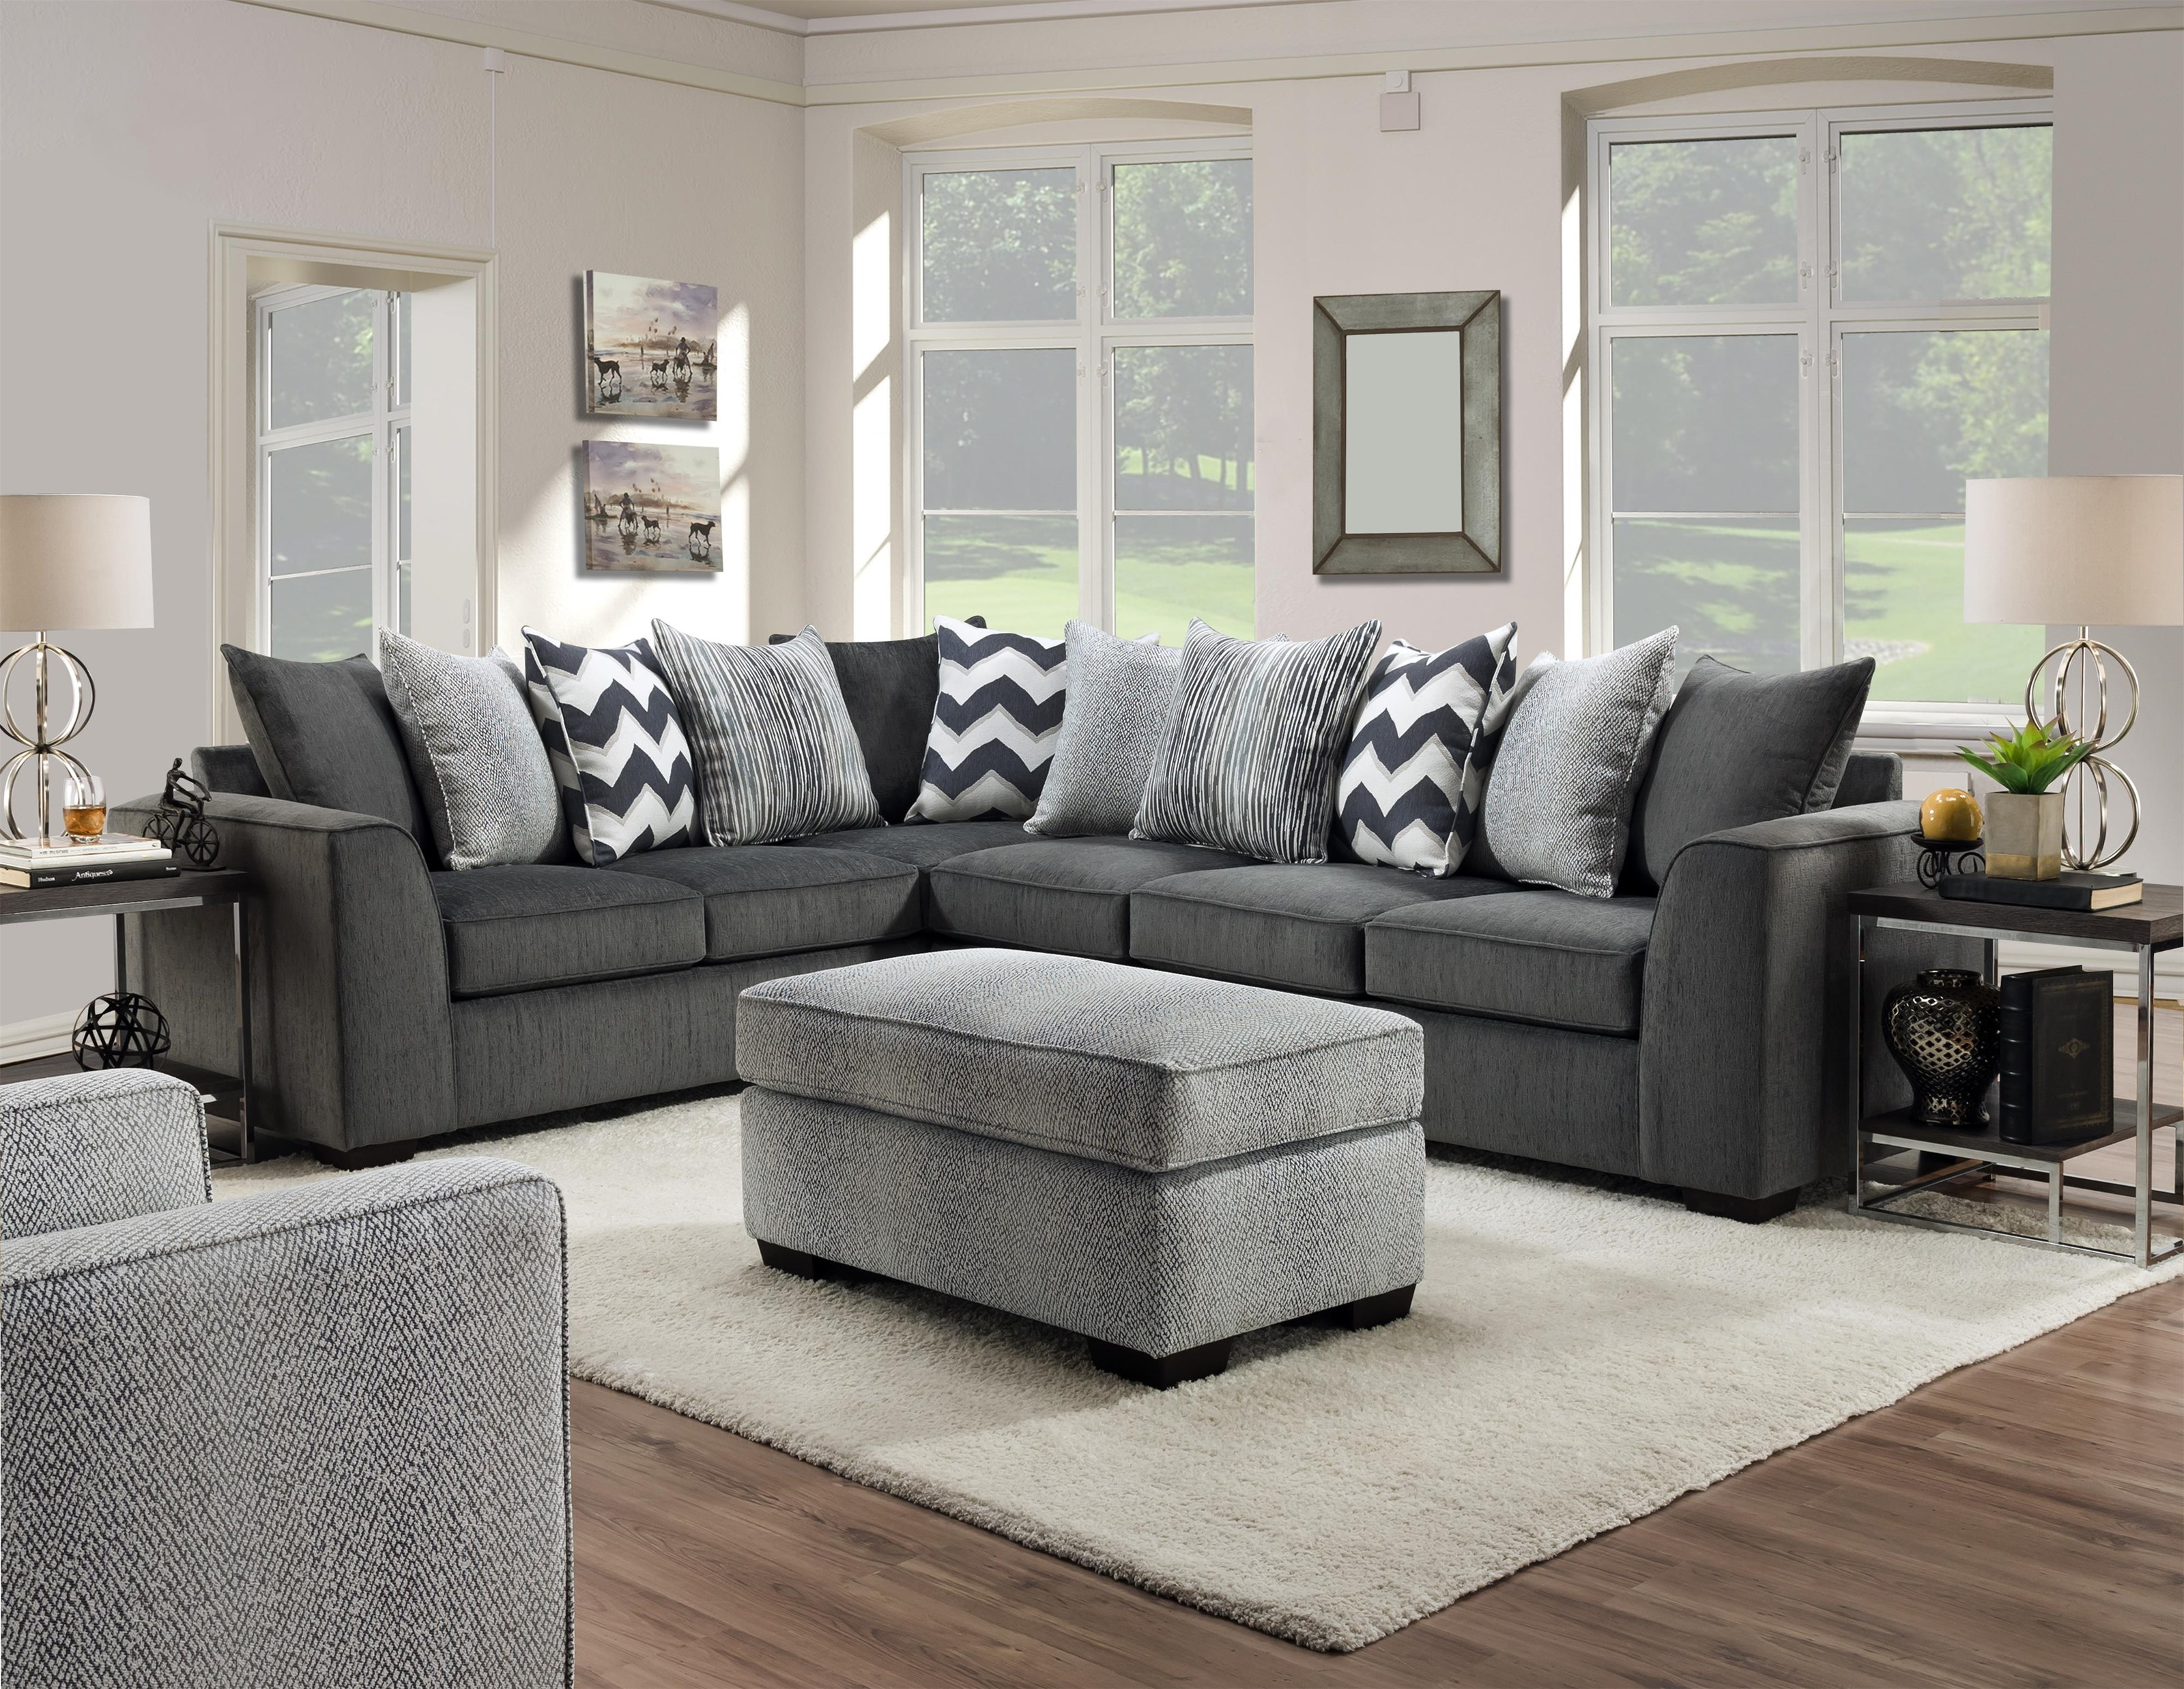 2600 2 Piece Sectional by Peak Living at Darvin Furniture